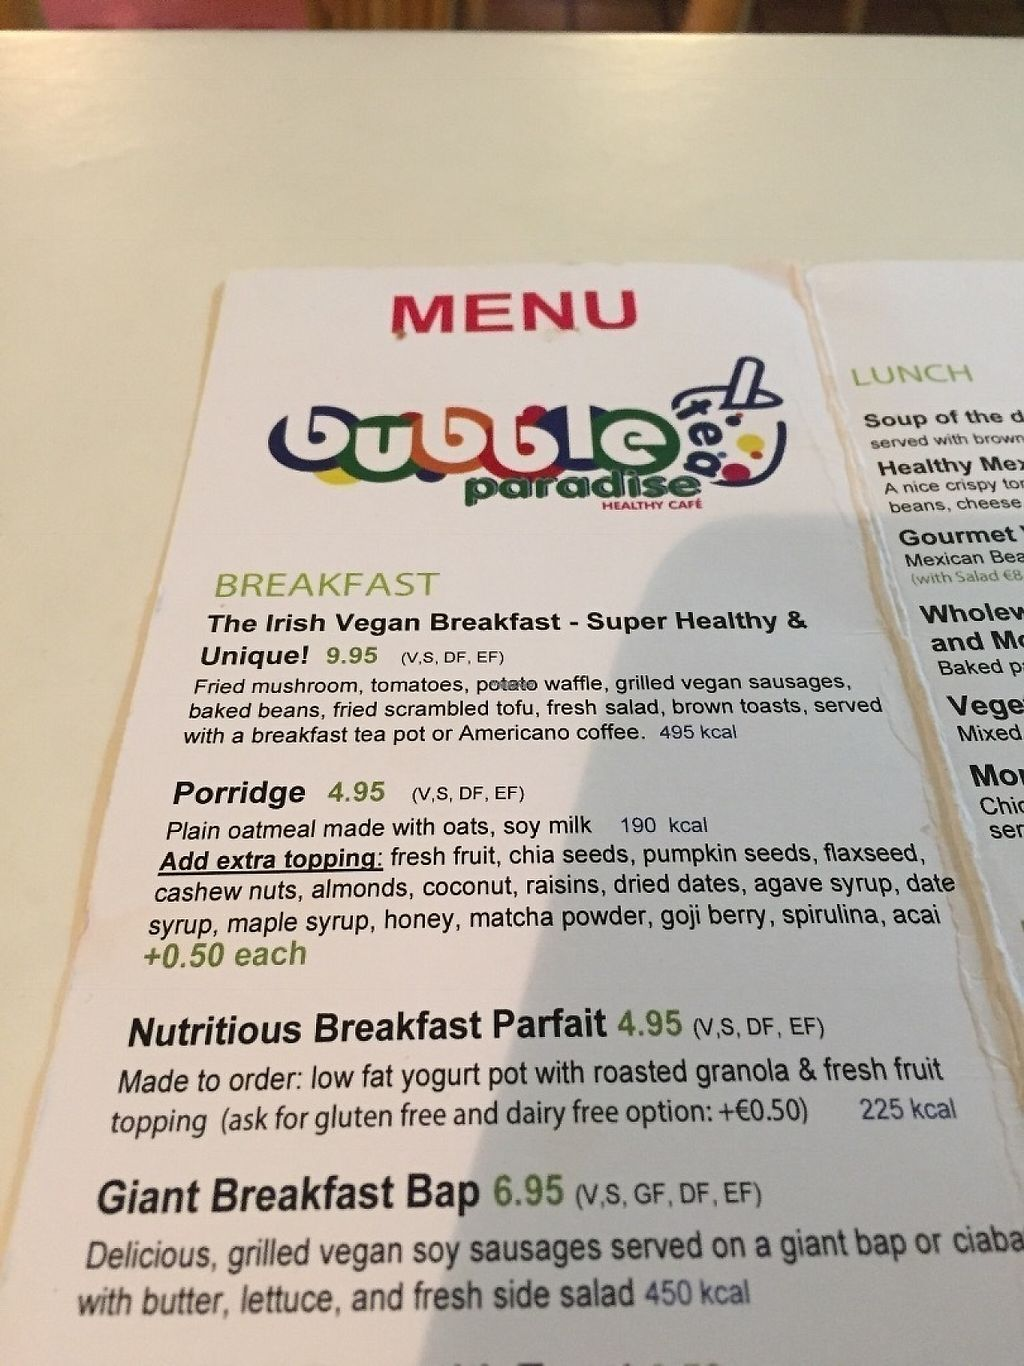 "Photo of CLOSED: Bubble Tea Paradise Healthy Cafe  by <a href=""/members/profile/StevieSurf"">StevieSurf</a> <br/>Menu <br/> February 12, 2017  - <a href='/contact/abuse/image/50008/225795'>Report</a>"